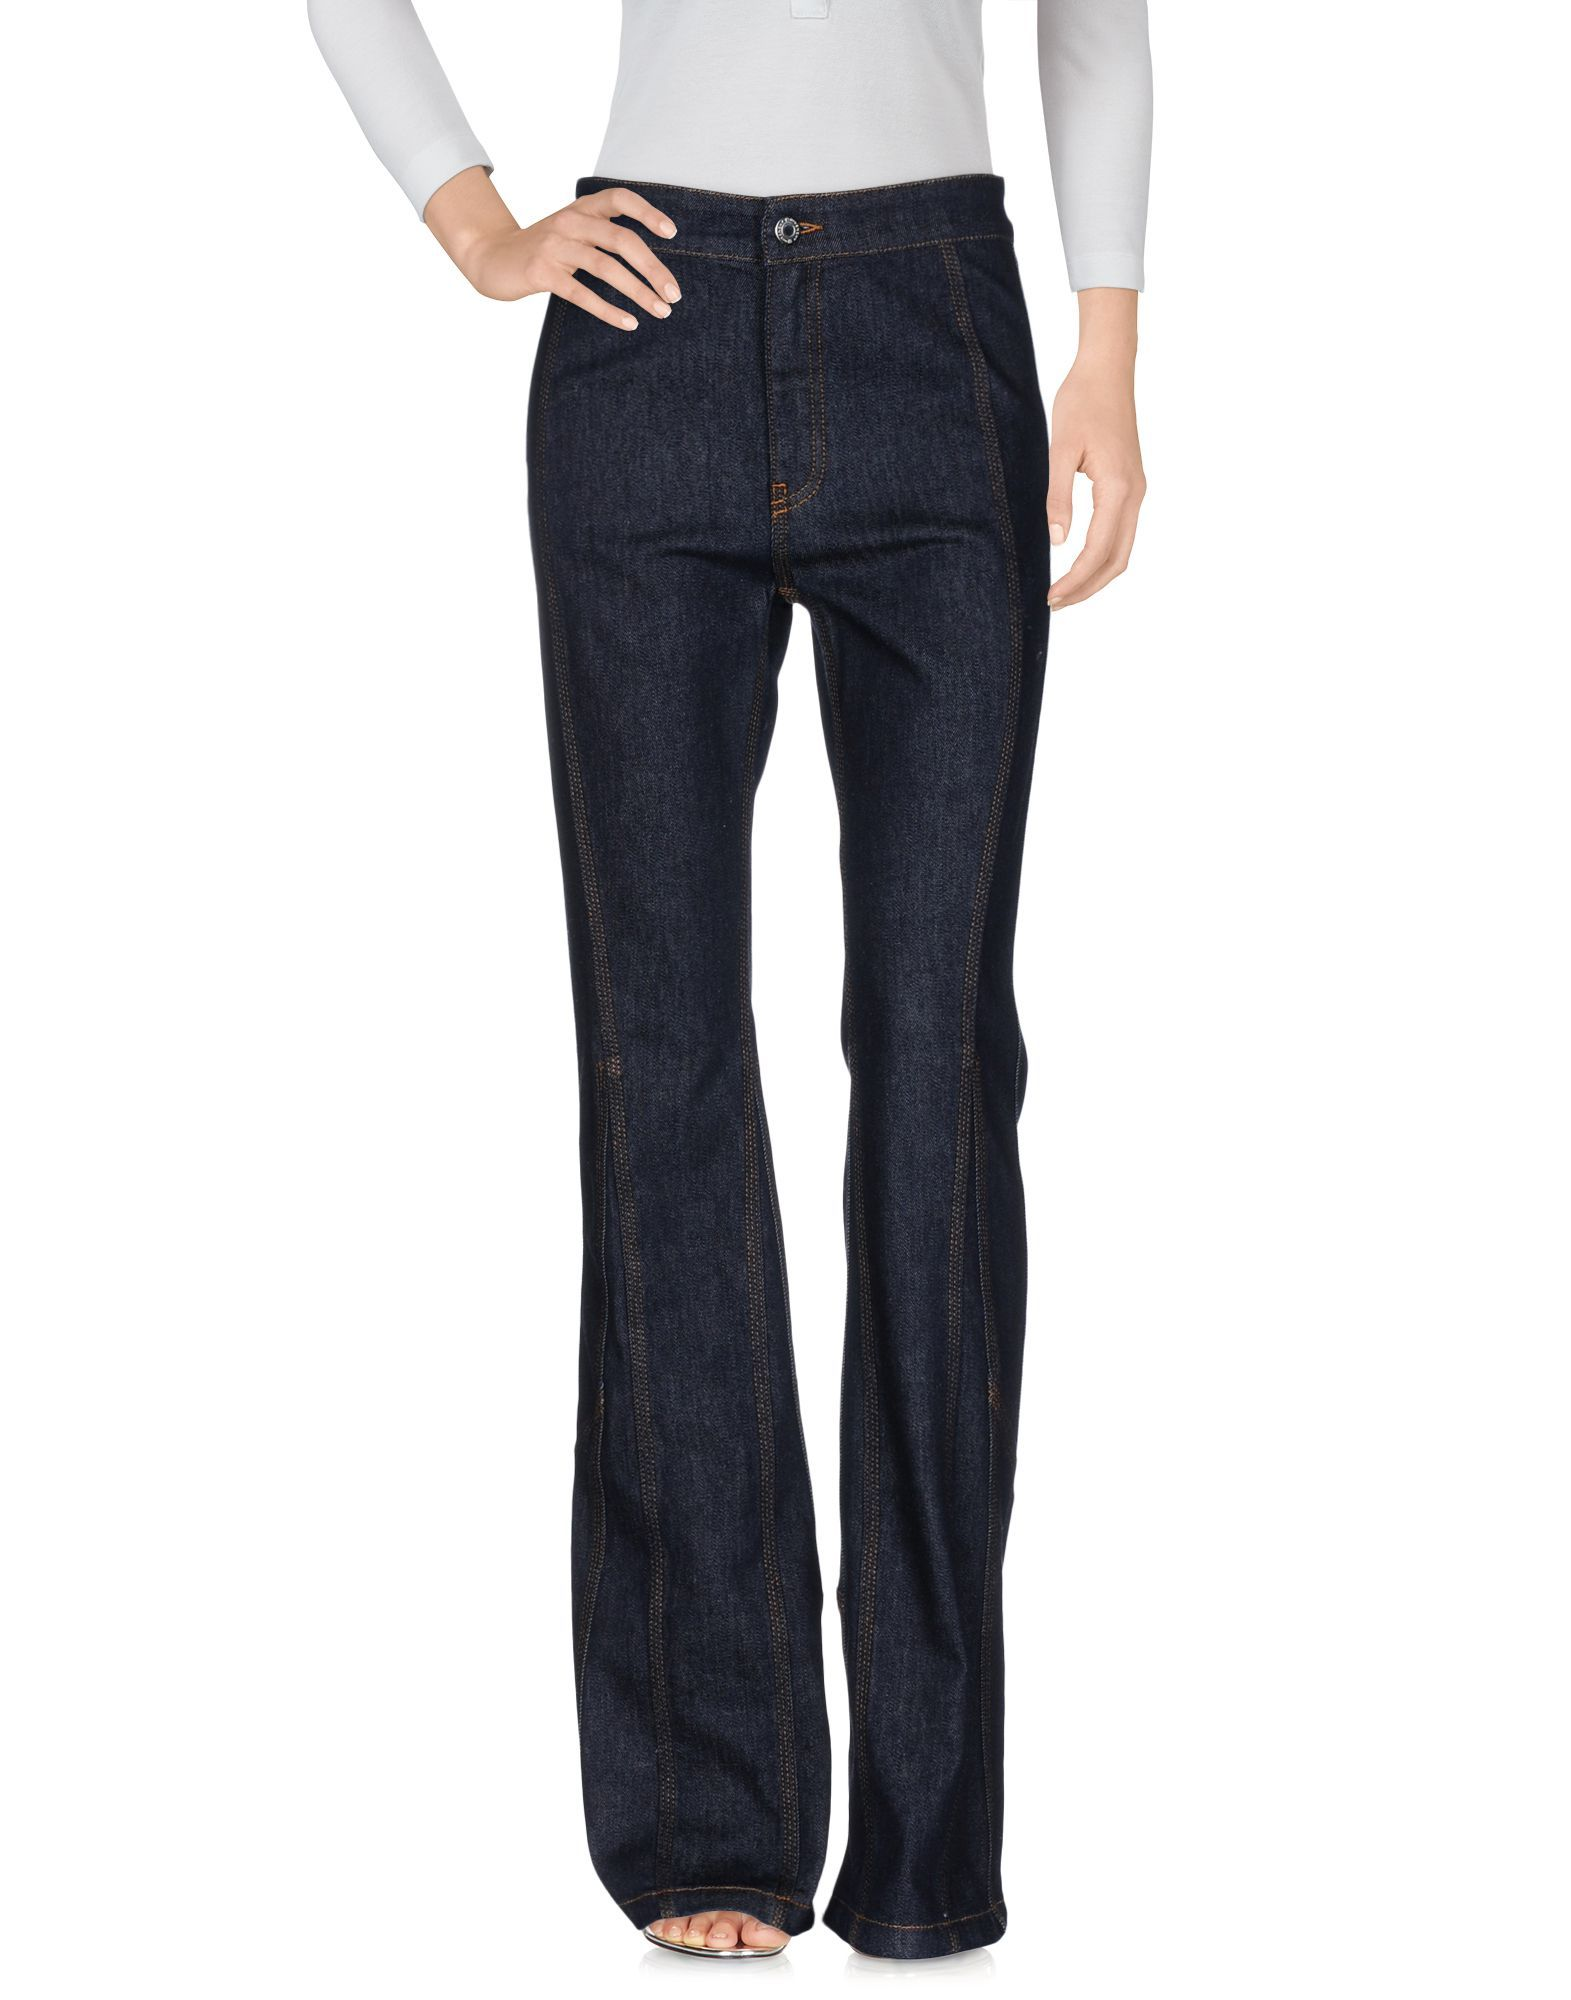 Givenchy Blue Cotton Dark Wash Jeans